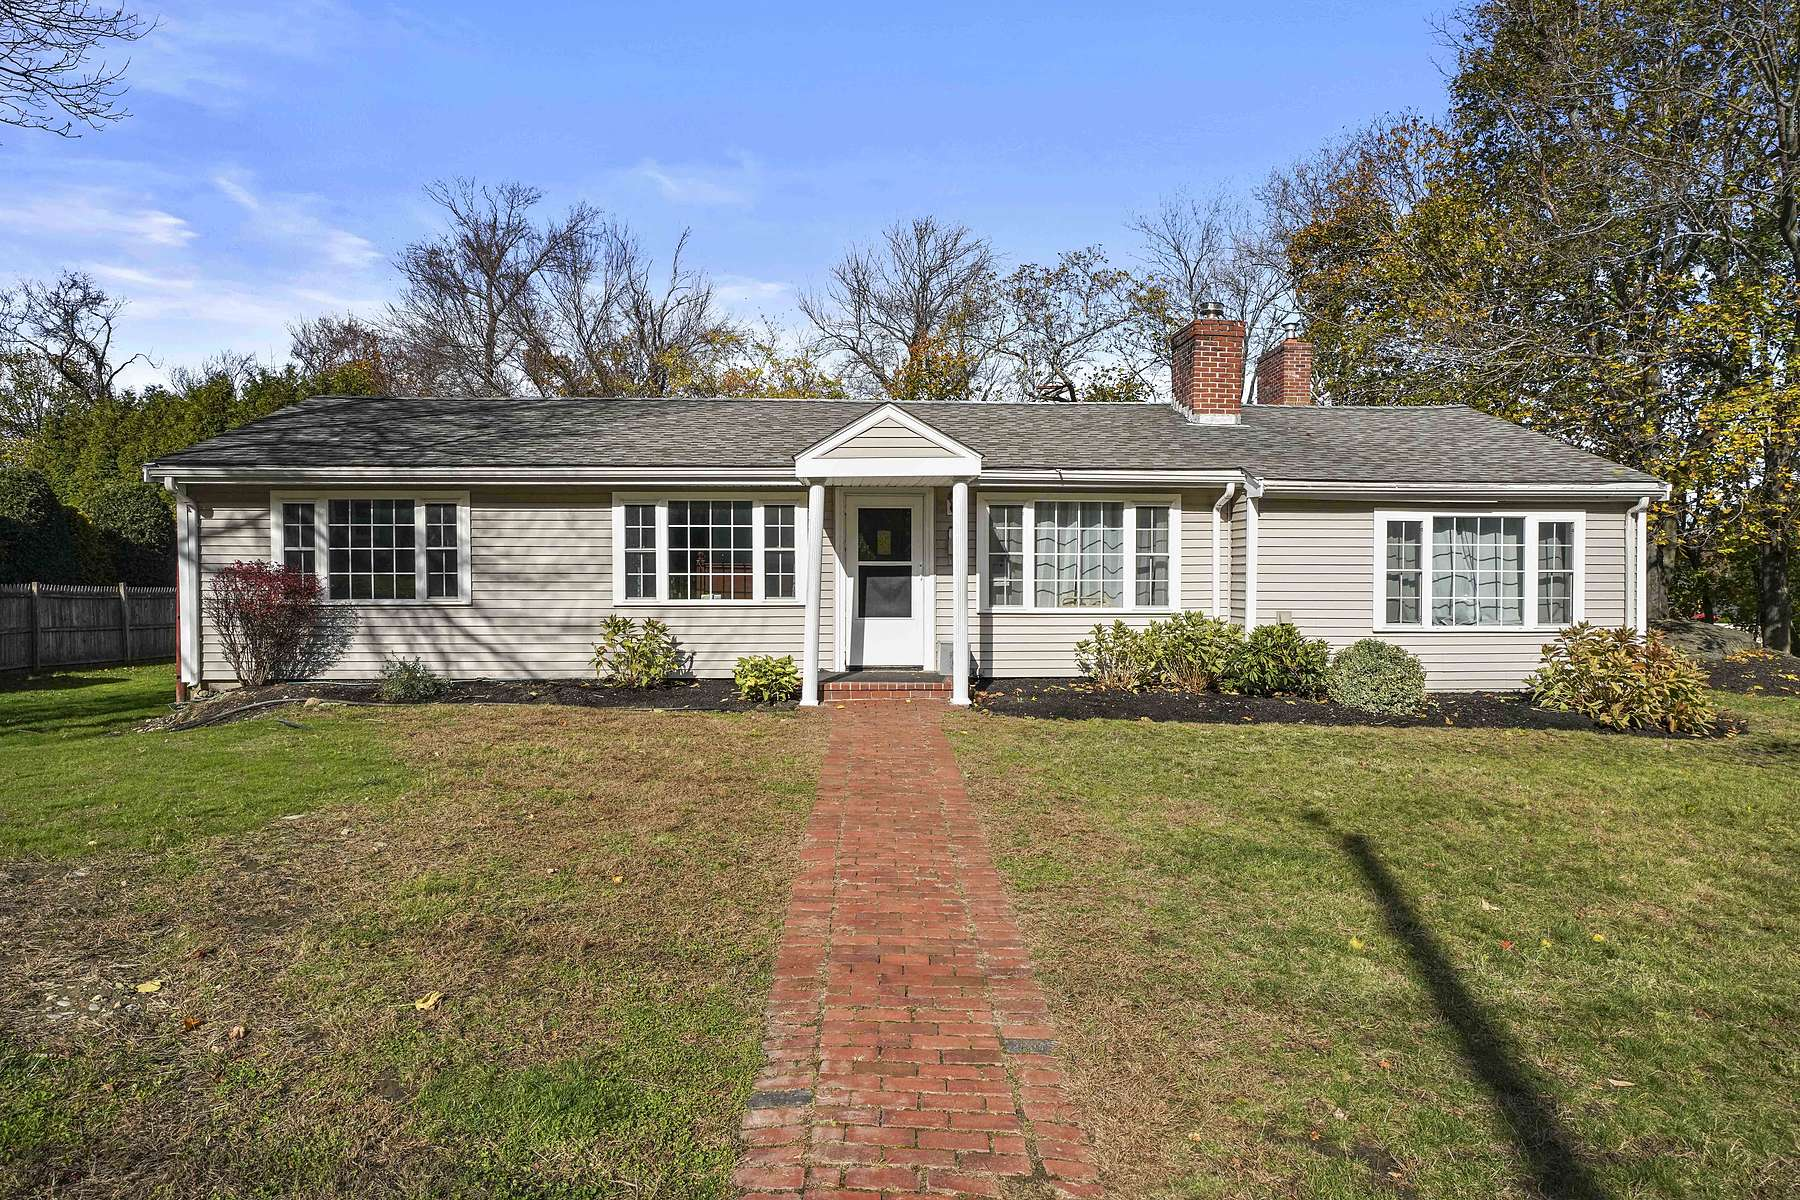 Single Family Homes for Sale at 1 Bulow Rd, Hingham, MA 02043 1 Bulow Rd Hingham, Massachusetts 02043 United States